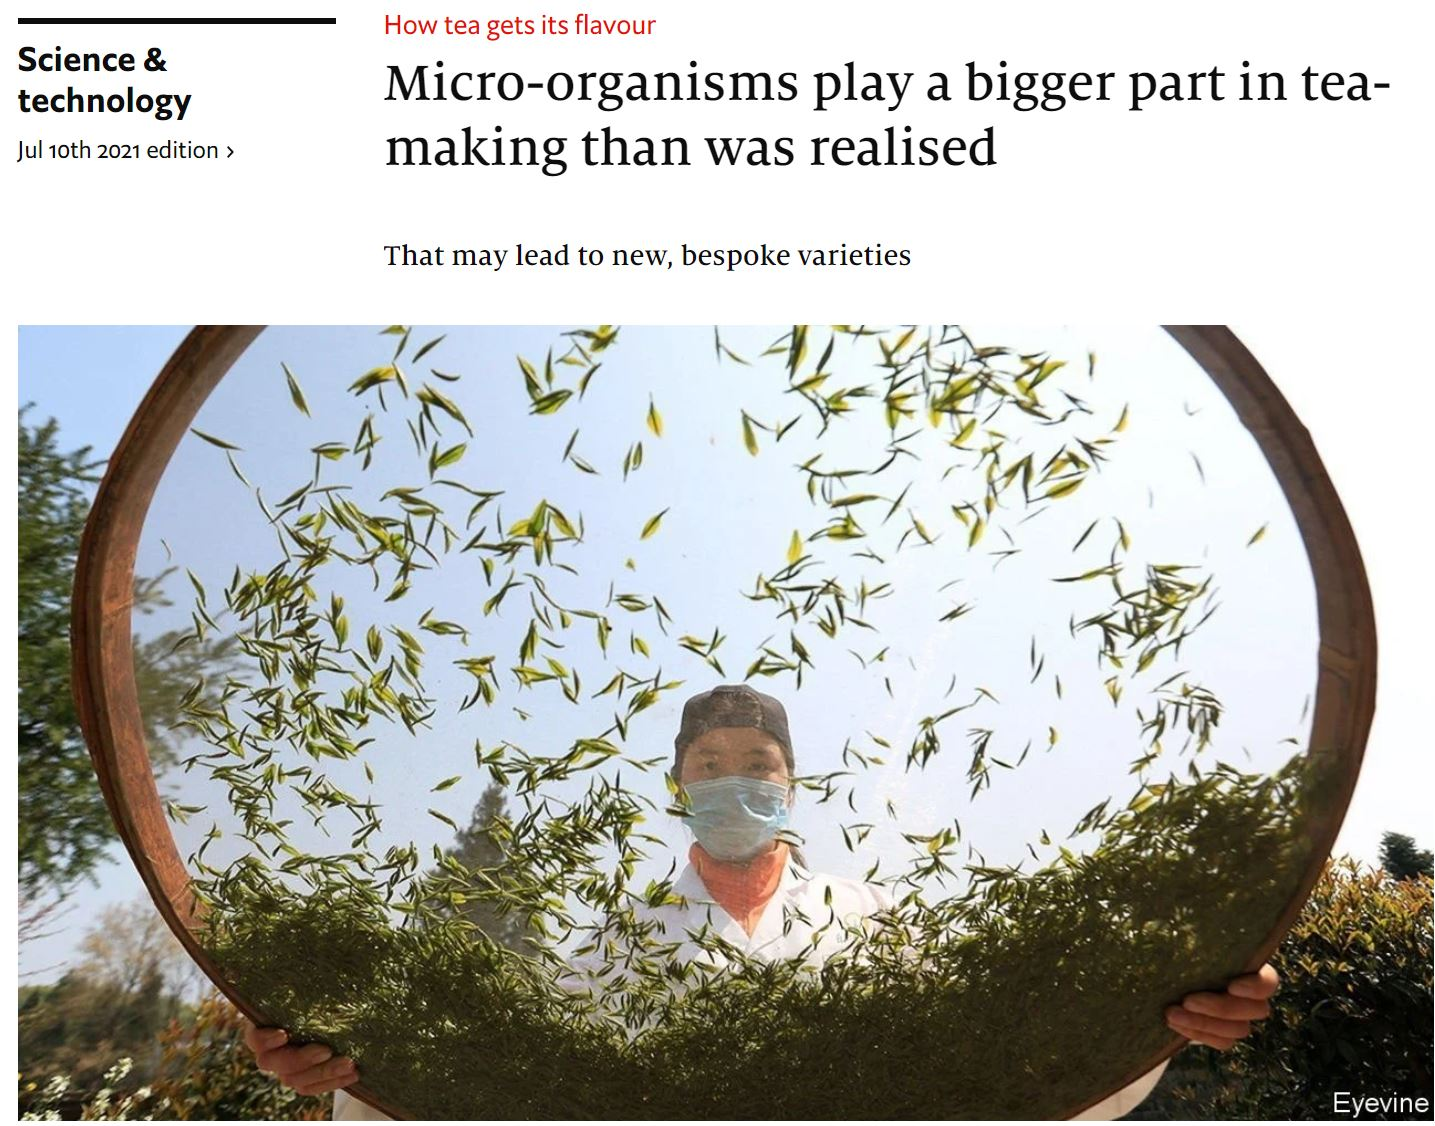 econ-2021-07-10-Micro-organisms play a bigger part in tea-making than was realised